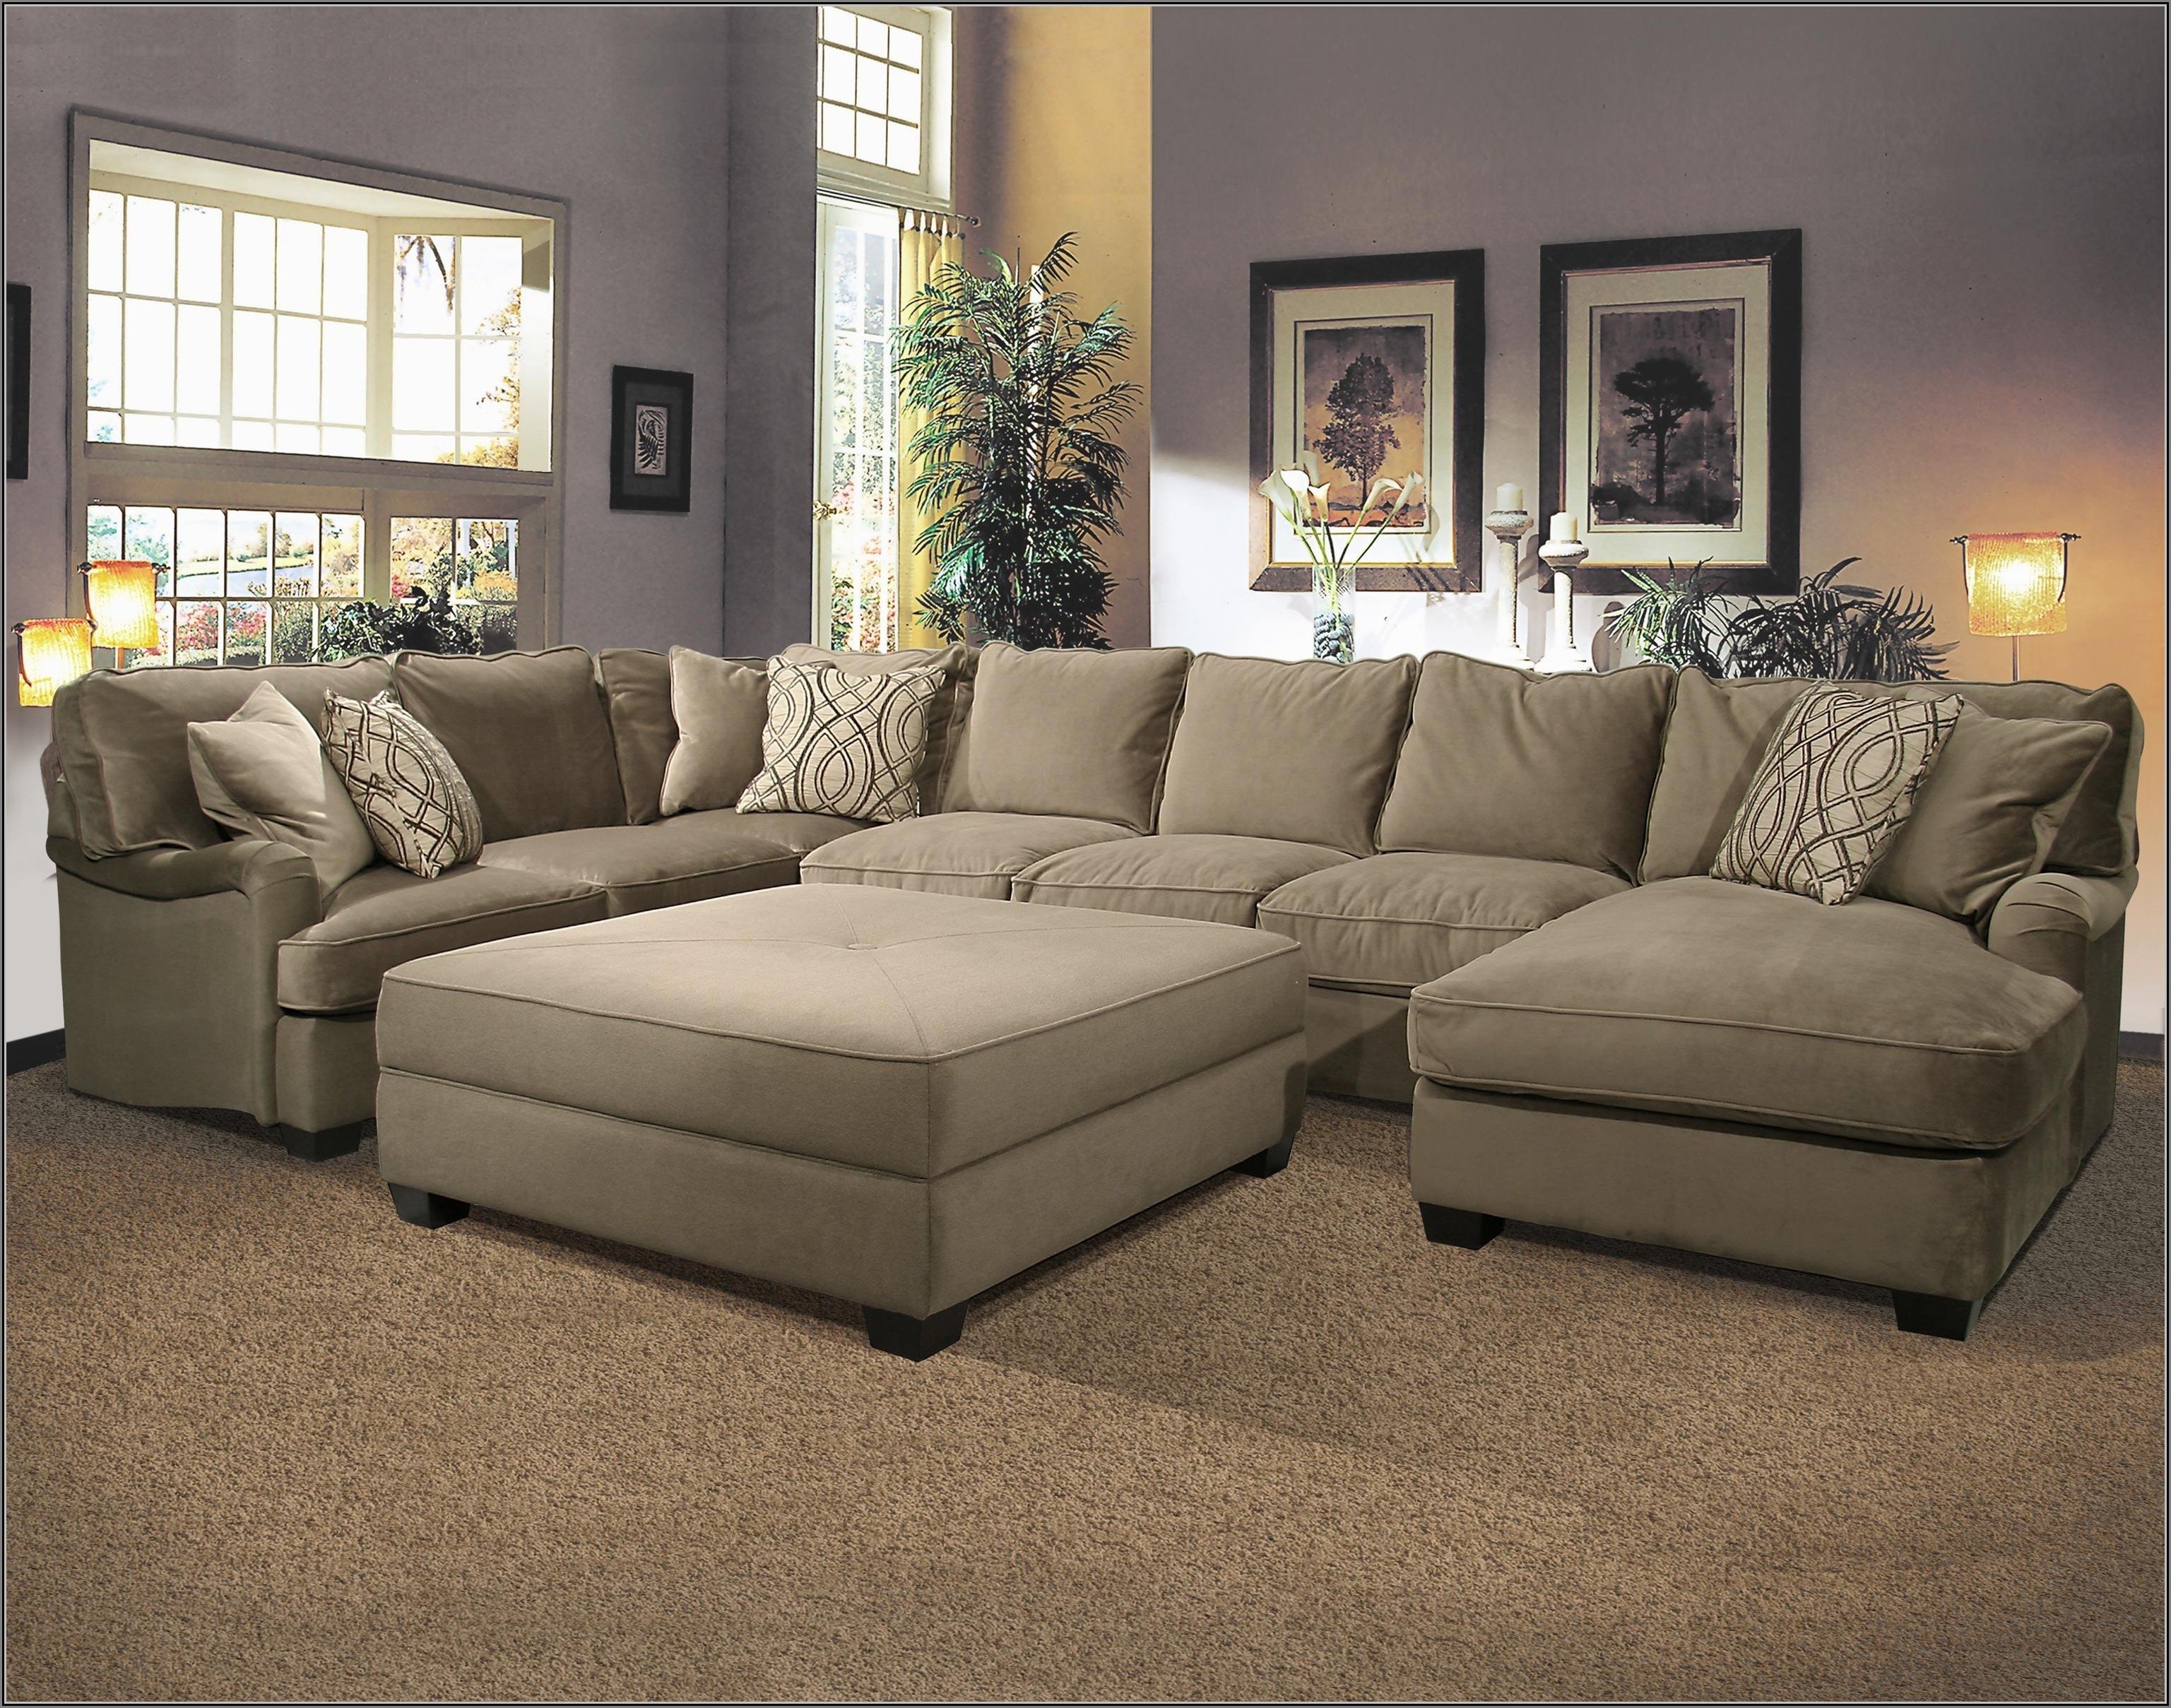 Epic Large Fabric Sectional Sofas 21 On 3 Piece Sectional Sleeper Pertaining To 3 Piece Sectional Sleeper Sofas (View 7 of 10)